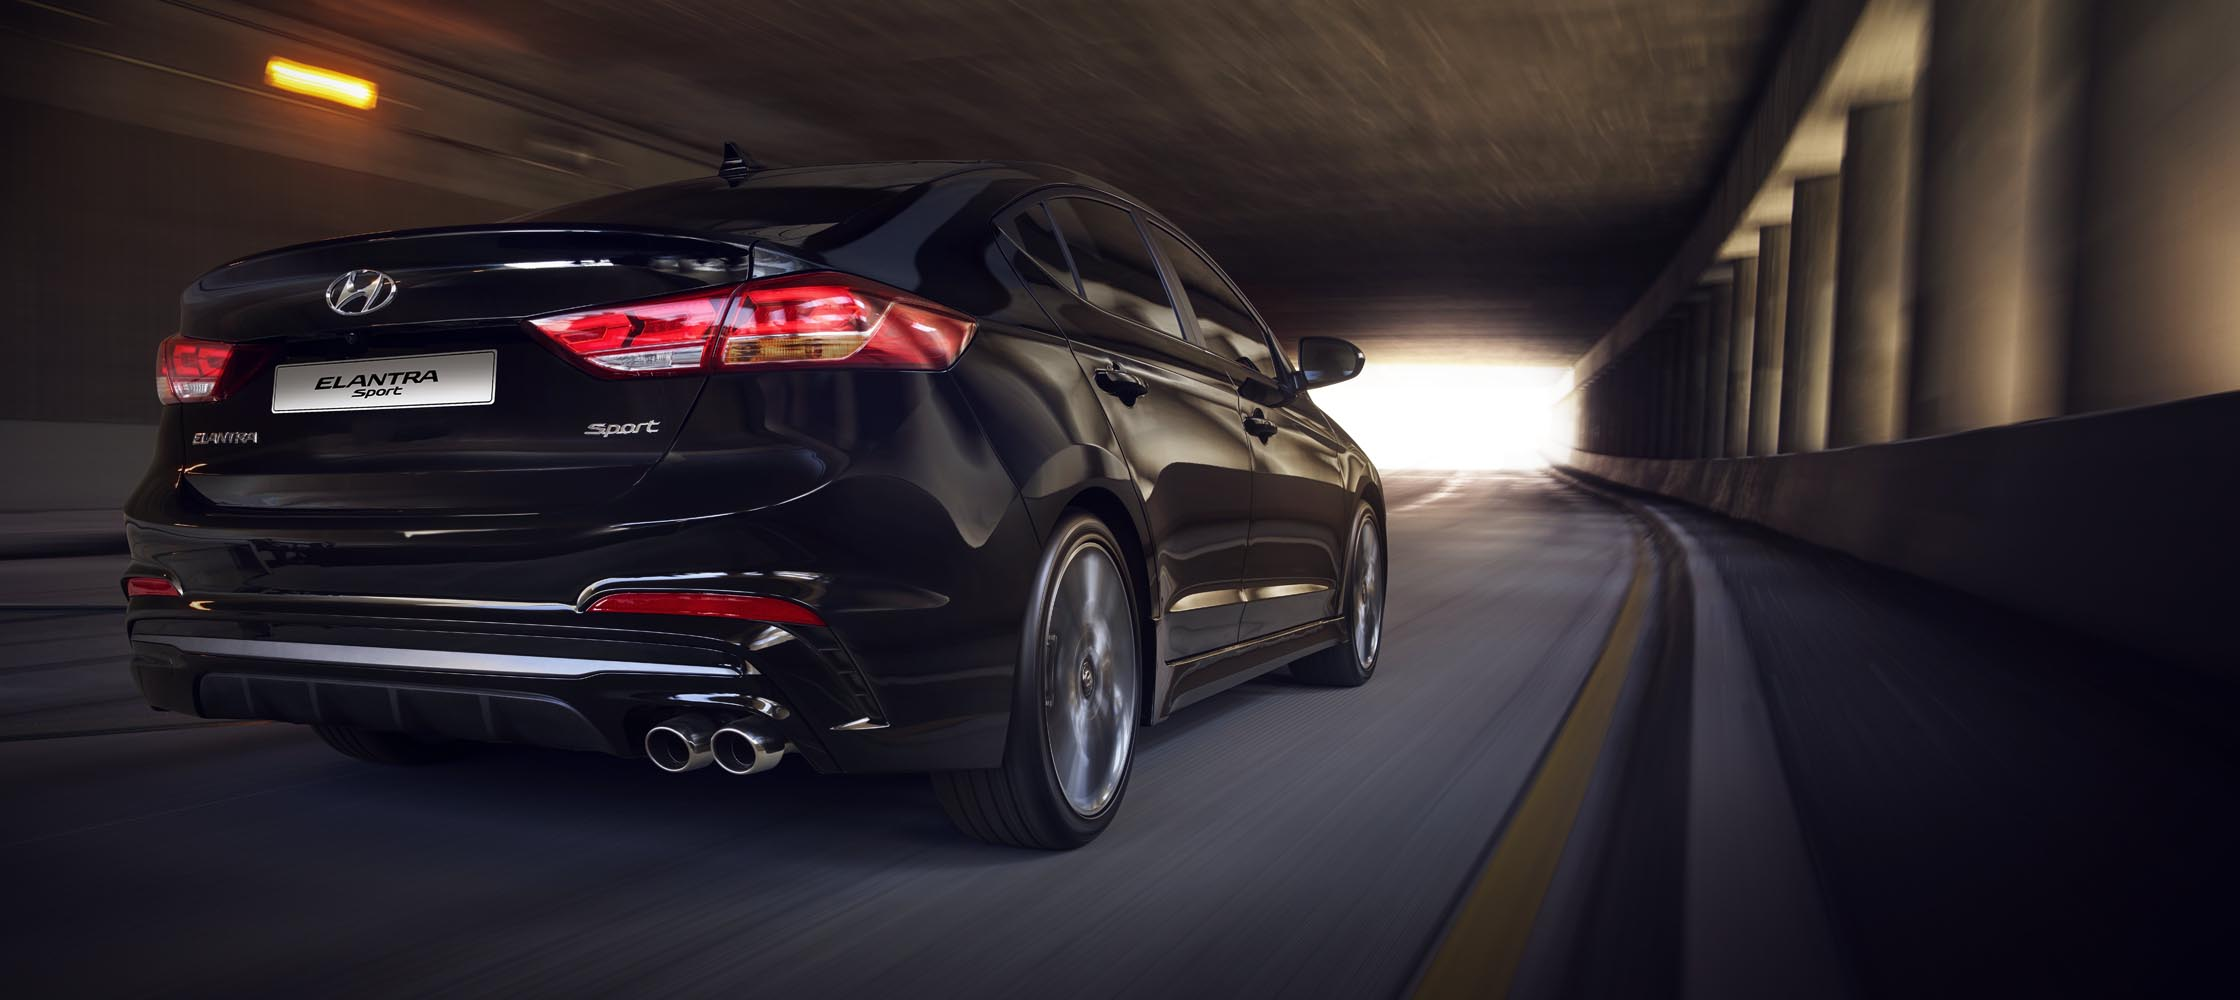 Back view of black Hyundai Elantra Sport 2017 with sleek rear lights, driving through a tunnel